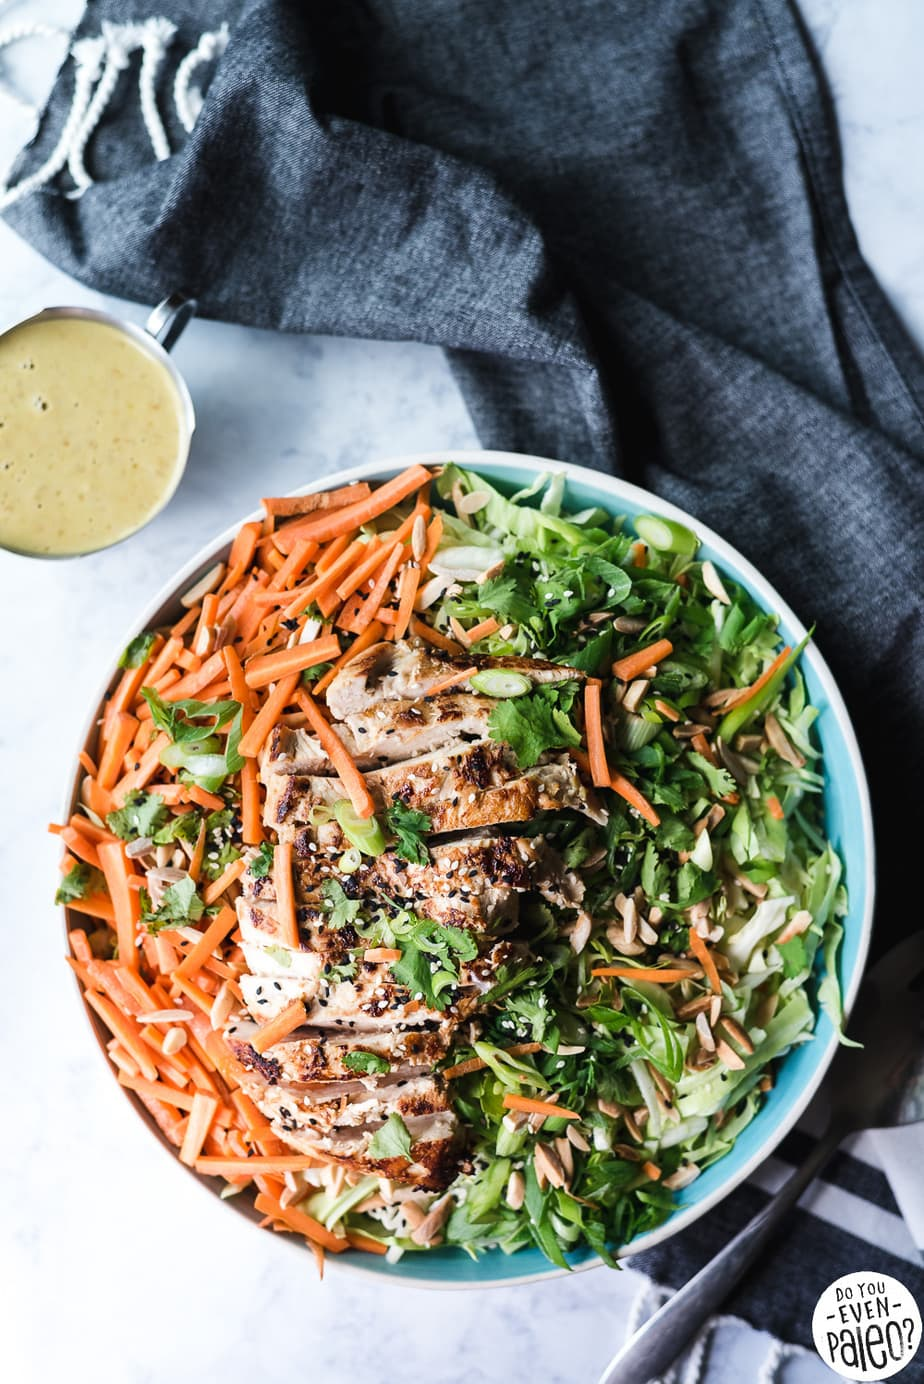 Paleo Chinese Chicken Salad Recipe with Sesame Ginger Dressing | DoYouEvenPaleo.net